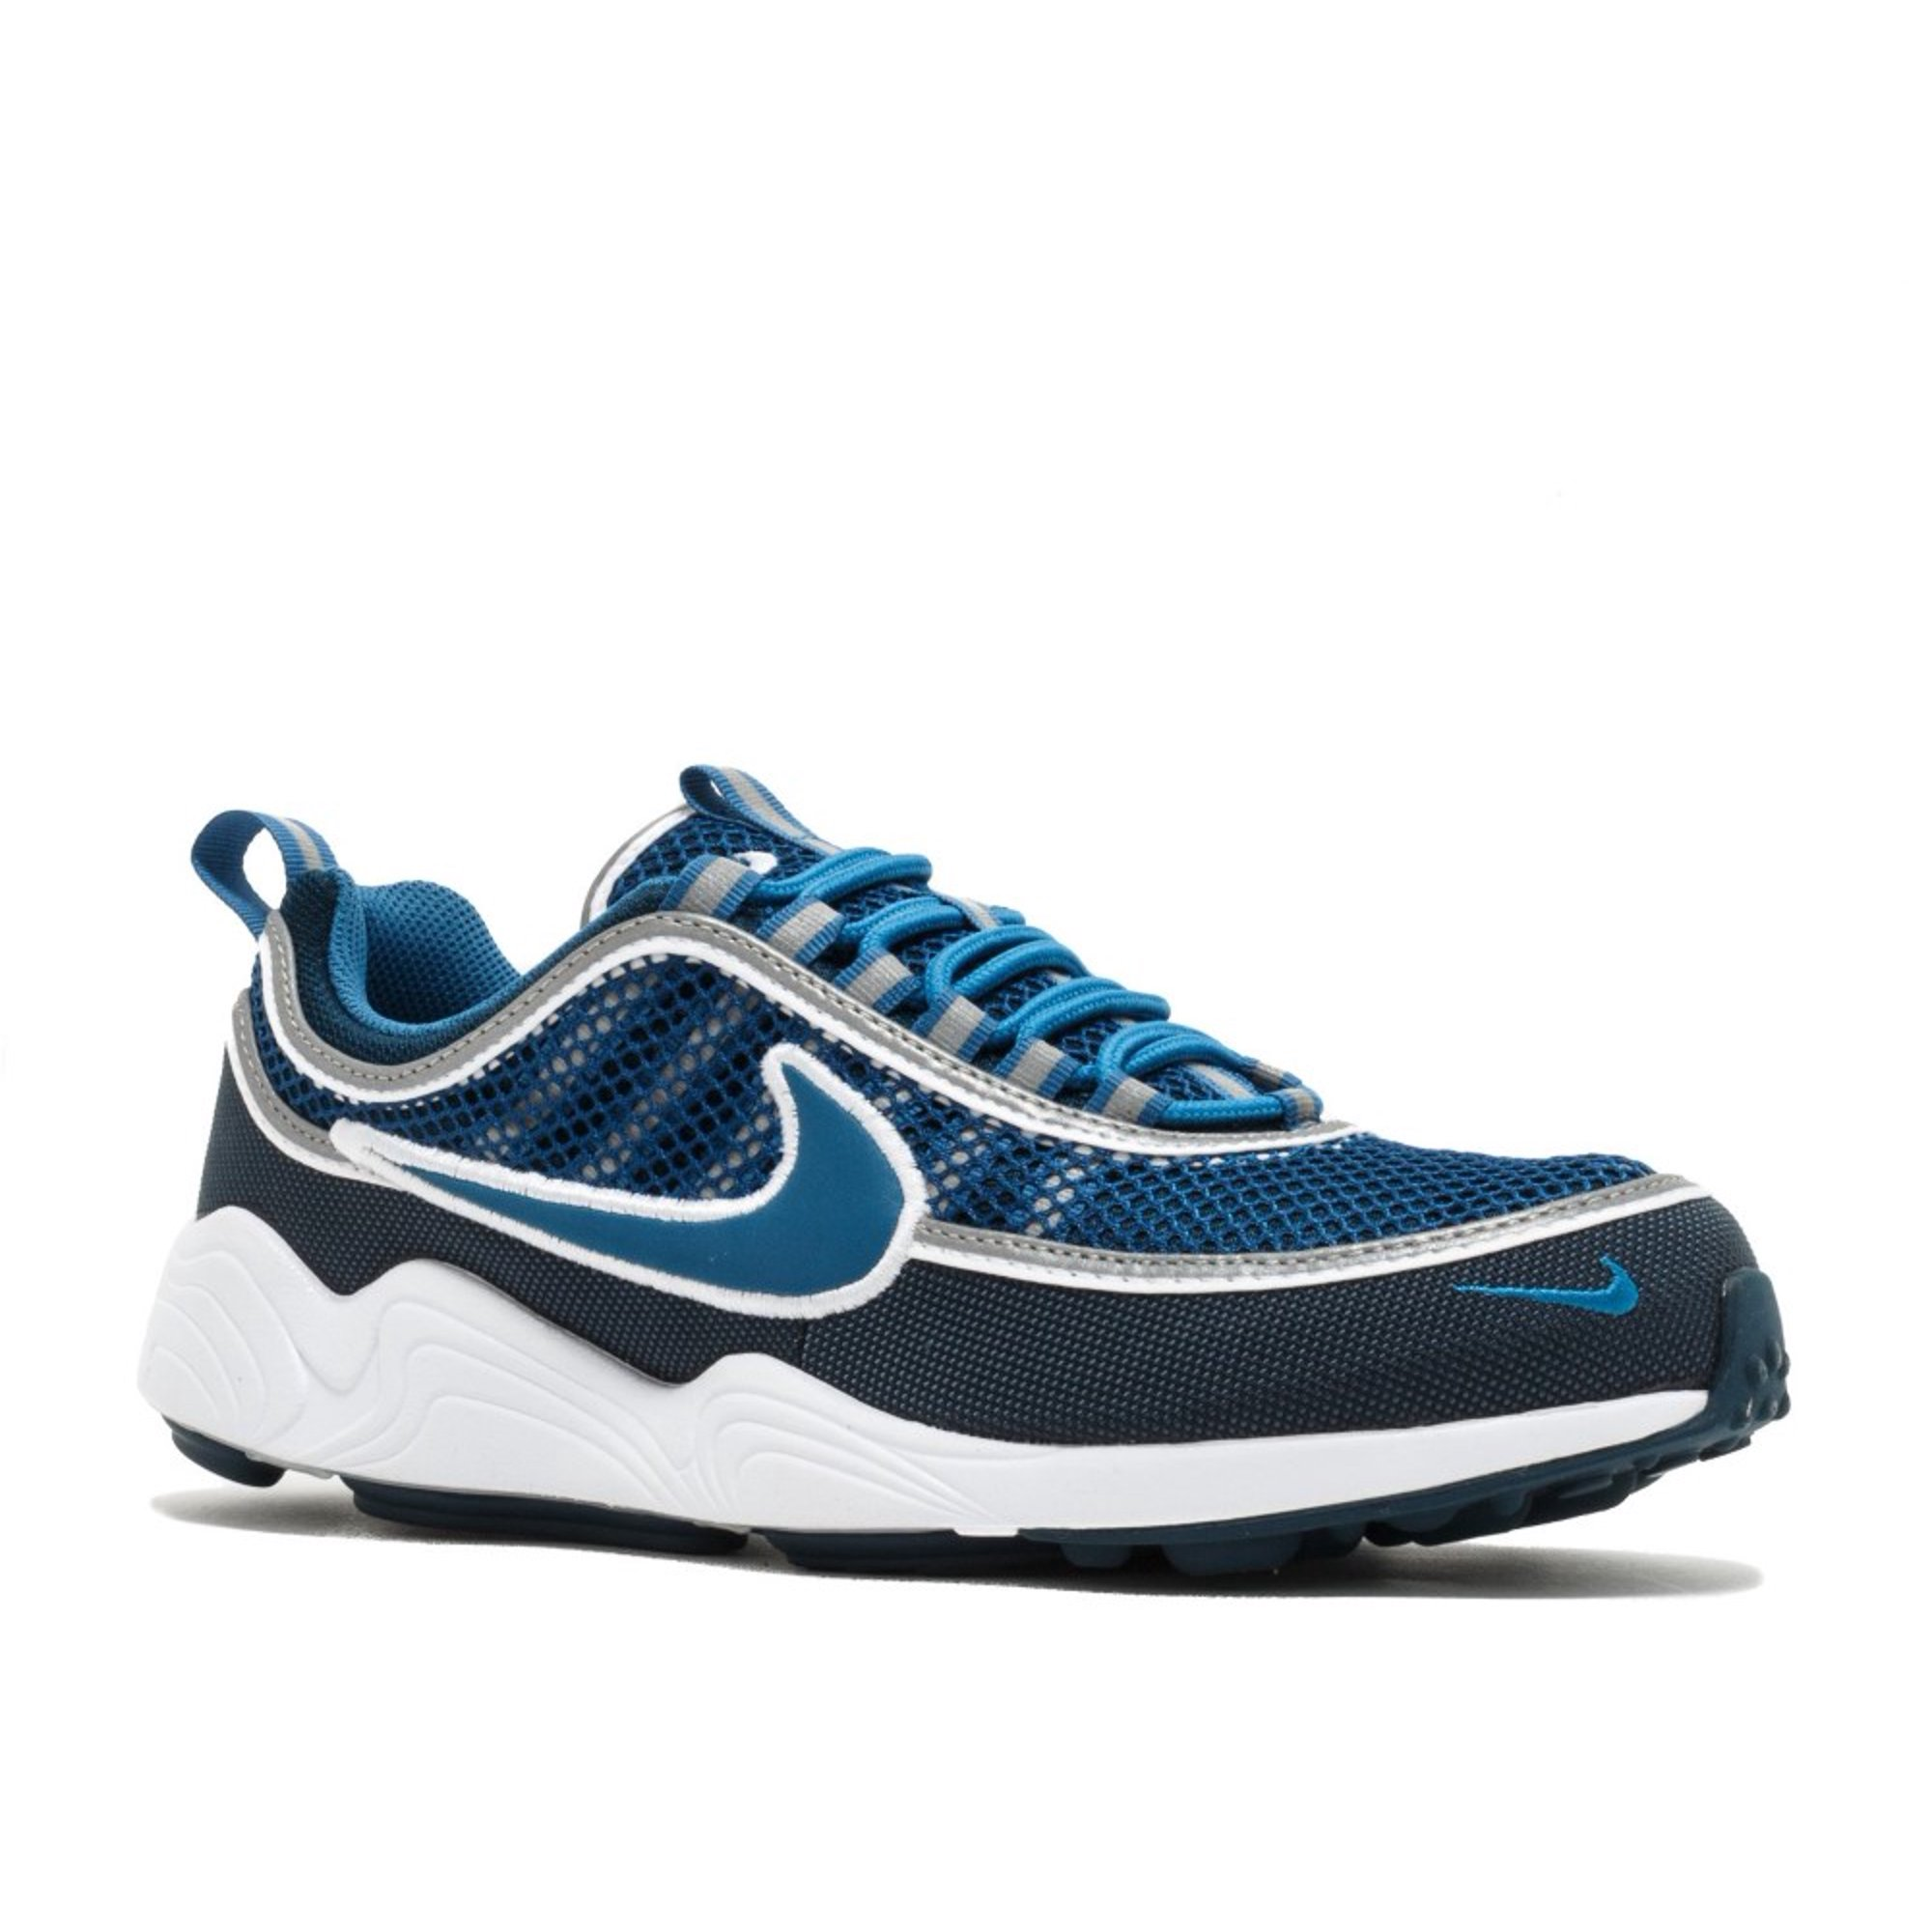 4913f060ad530 Nike - Men - Air Zoom Spiridon '16 - 926955-400 - Size 11 | Walmart ...